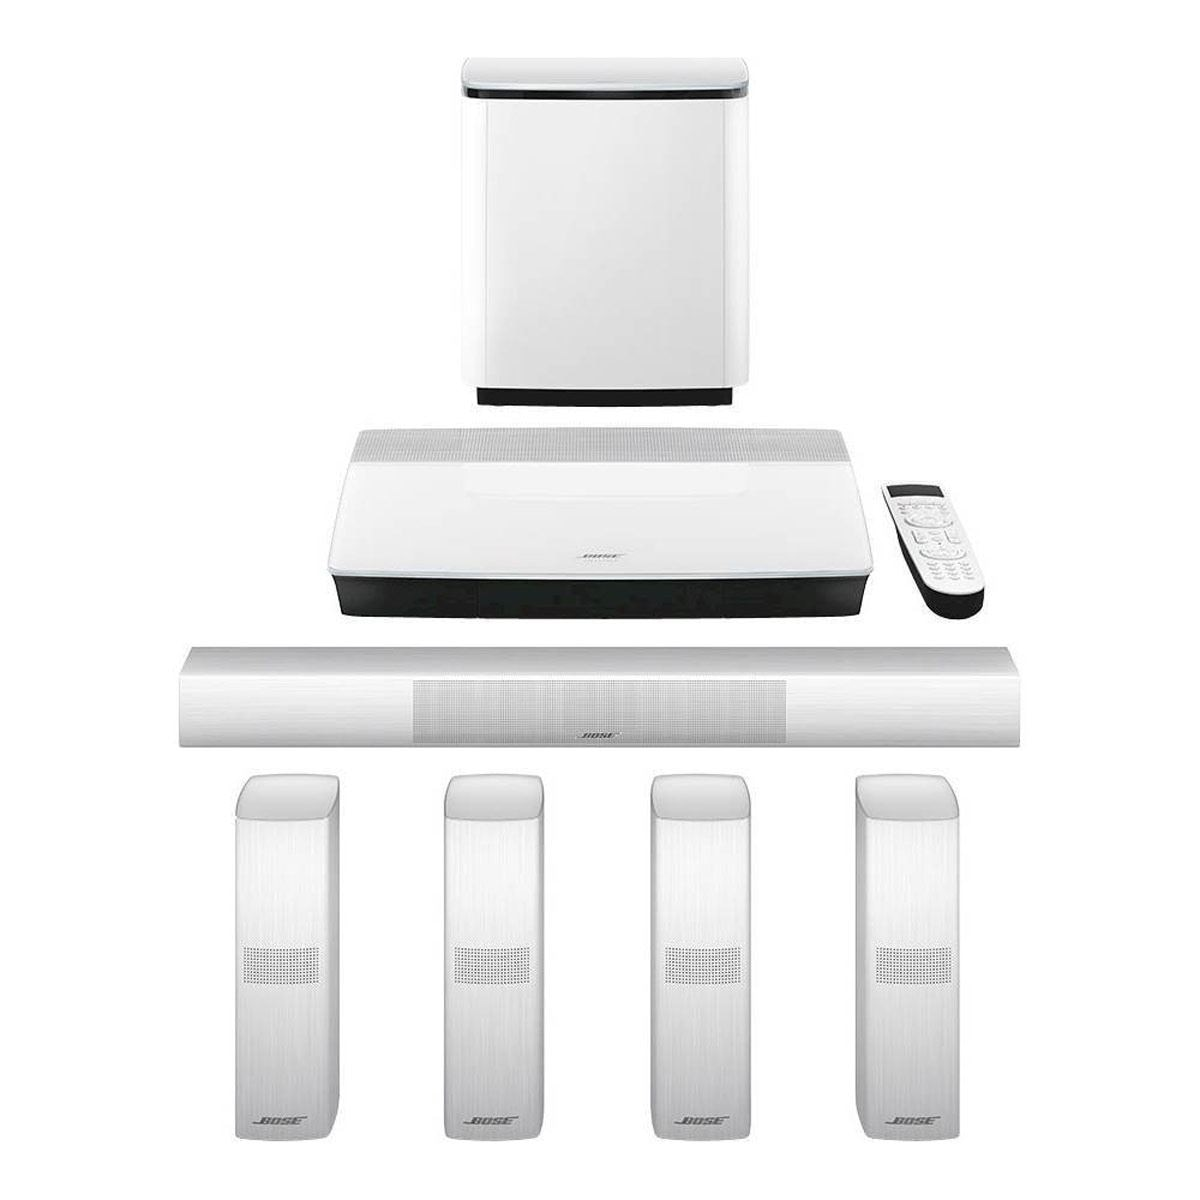 Hometheater LS 650 Blanco Bose